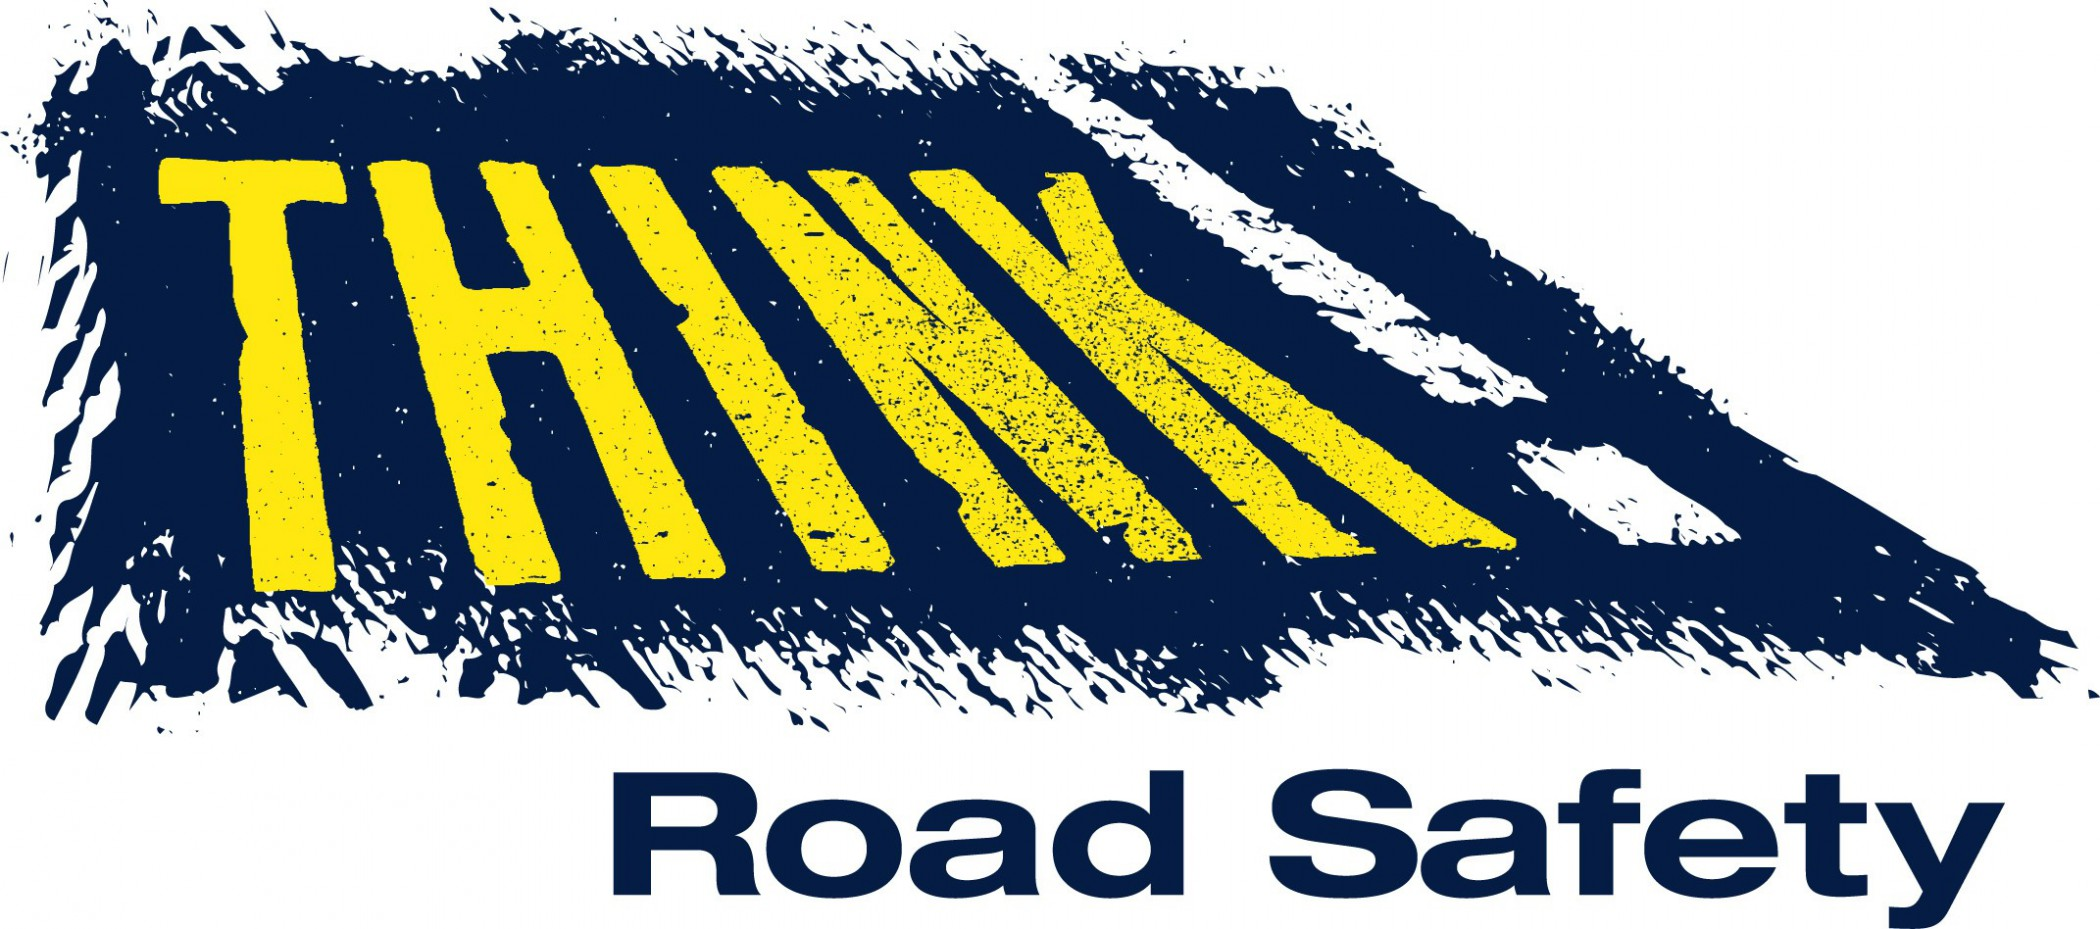 THINK Road safety e1316277603482